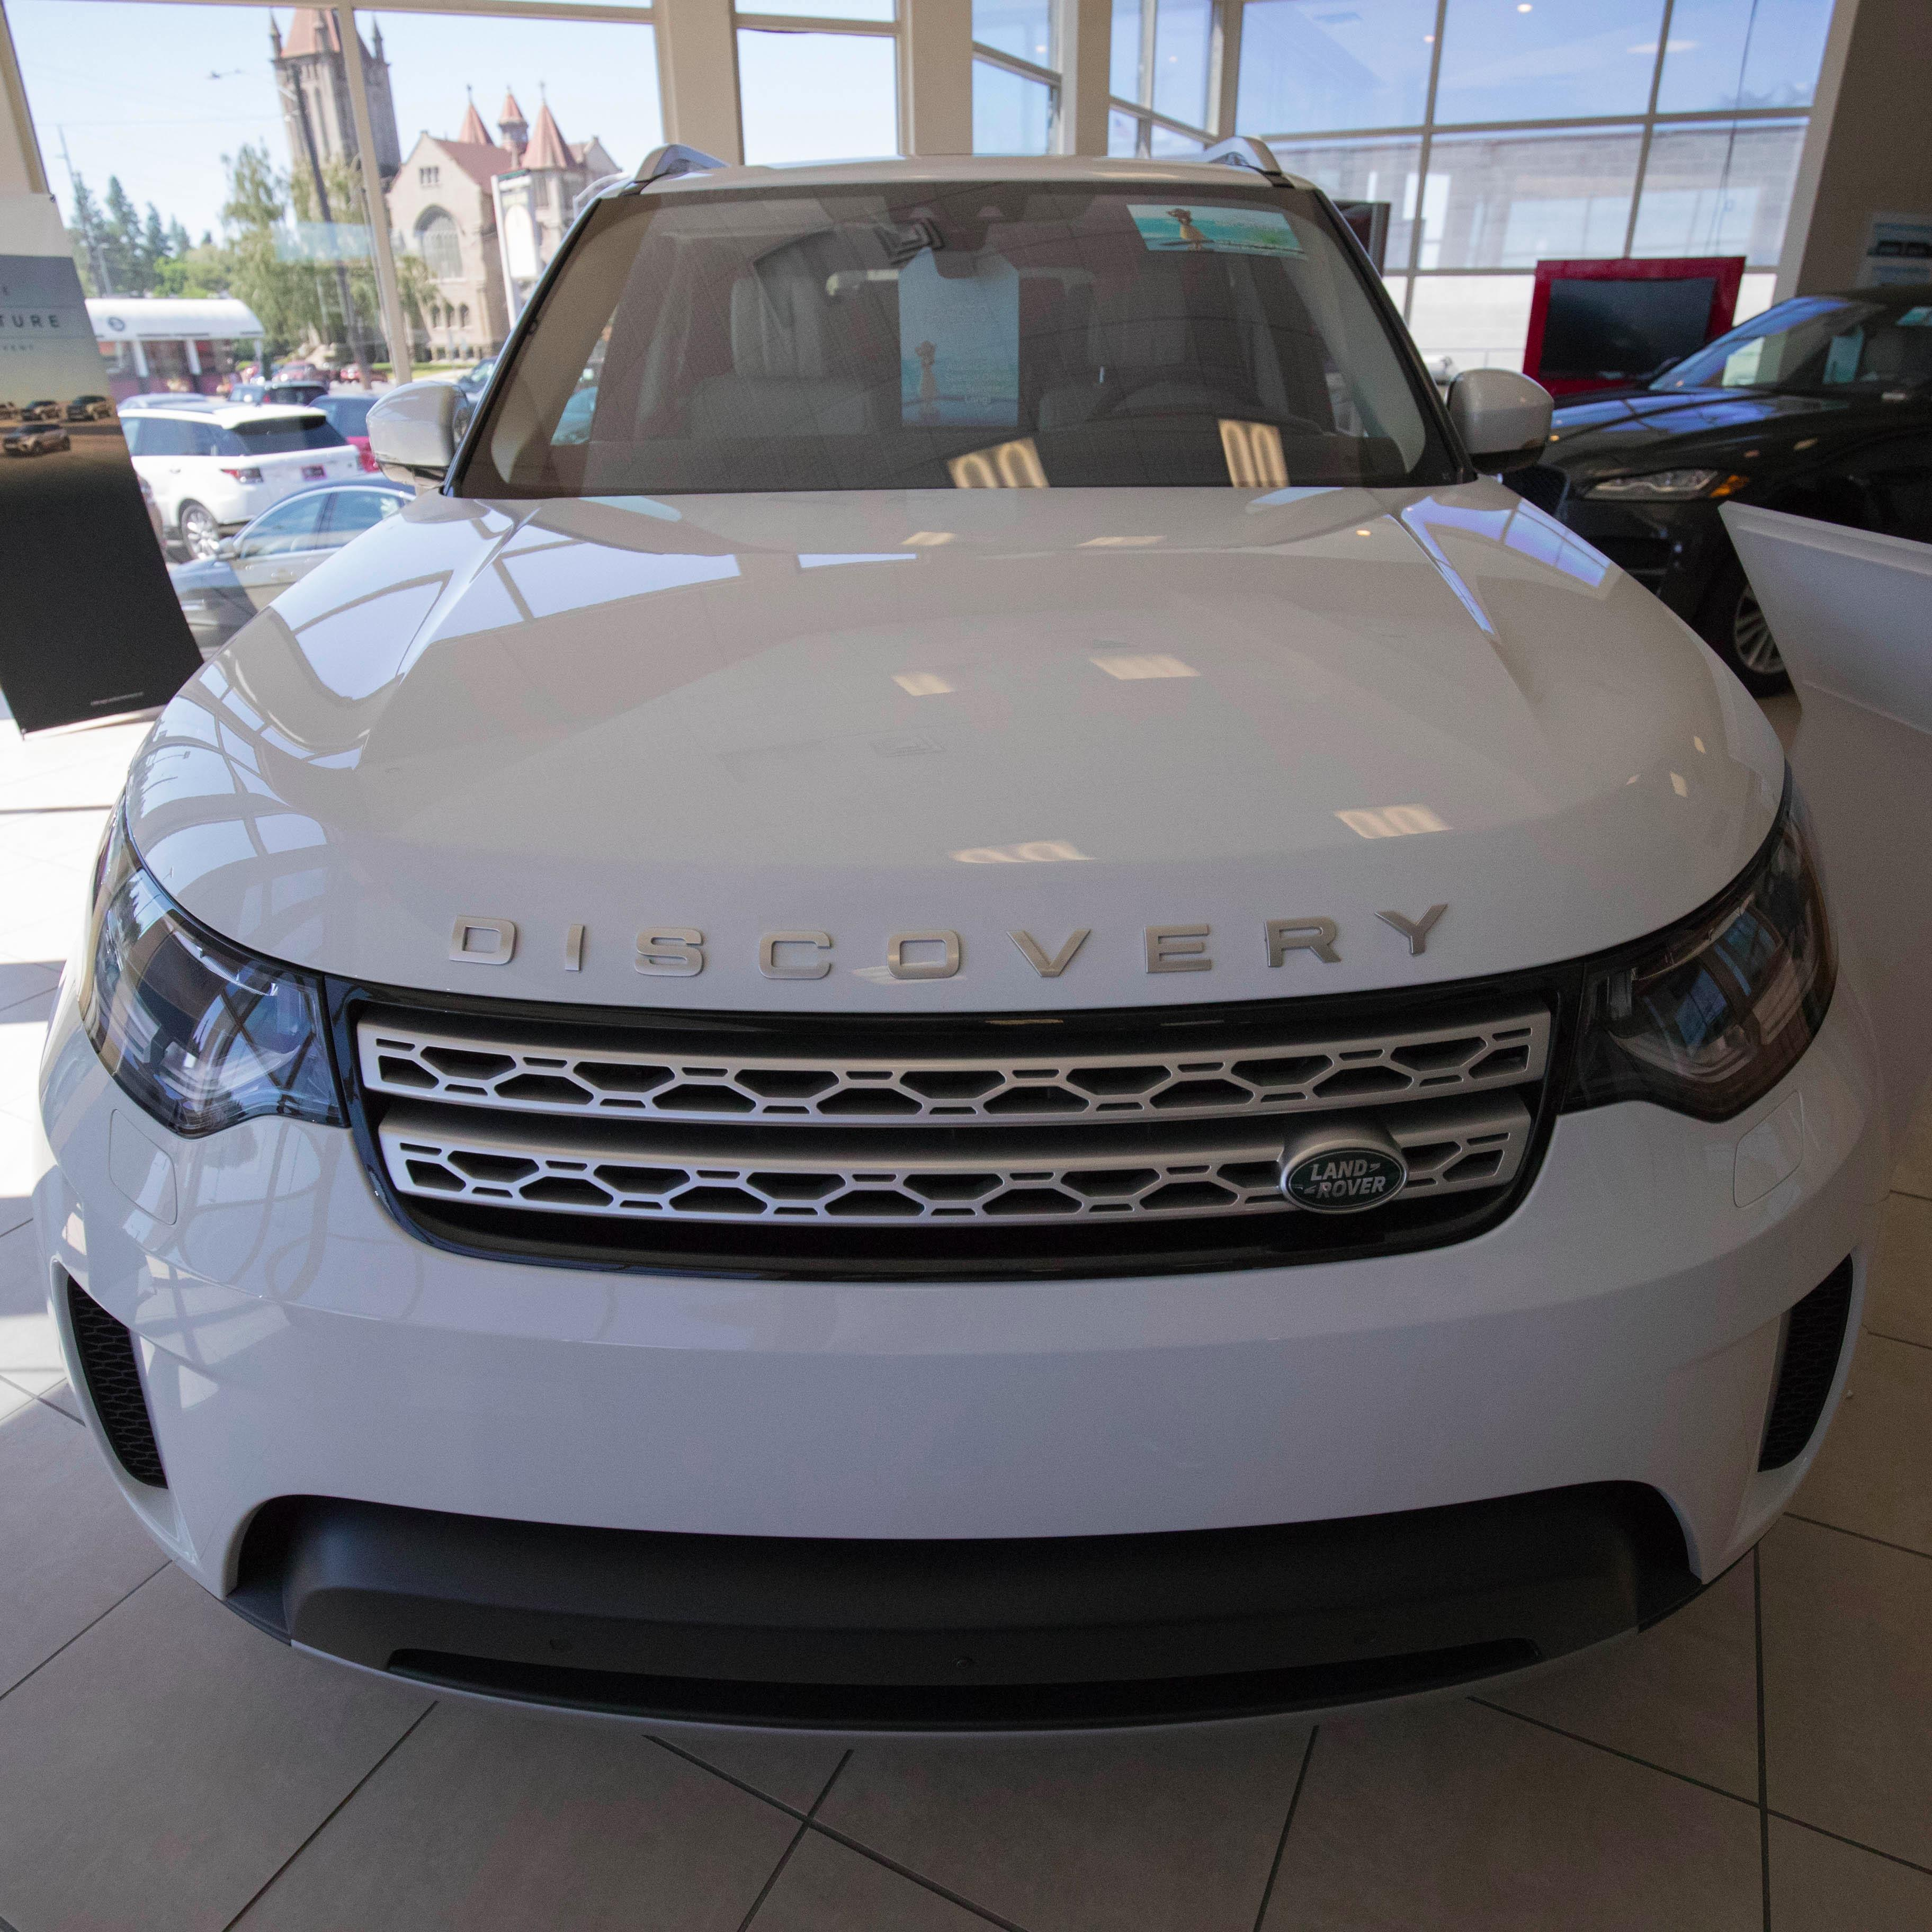 land rover spokane in spokane wa auto dealers yellow pages directory inc. Black Bedroom Furniture Sets. Home Design Ideas